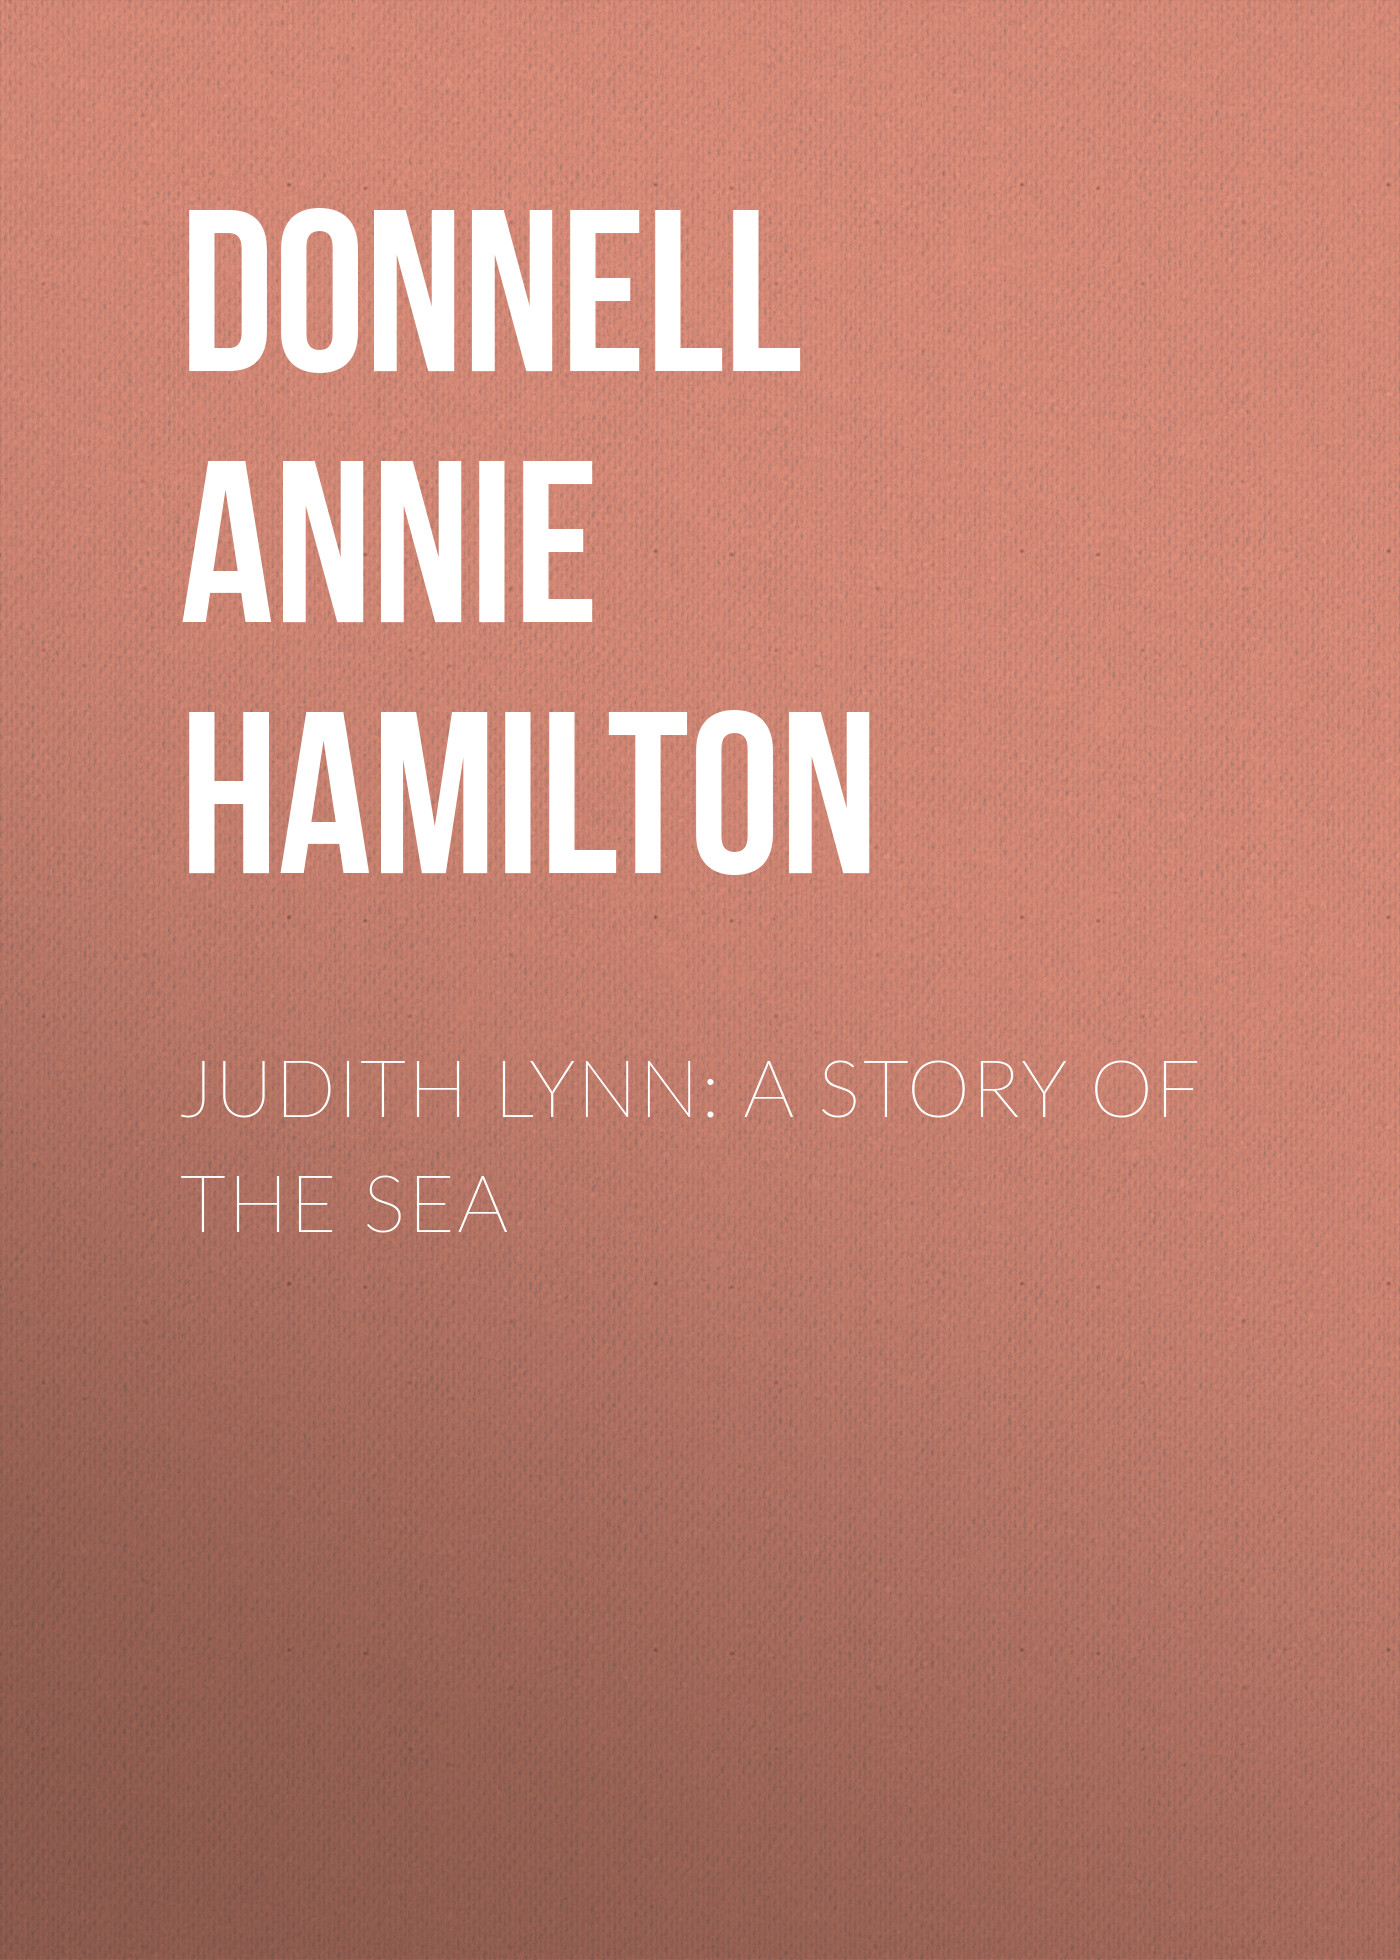 Donnell Annie Hamilton Judith Lynn: A Story of the Sea цена